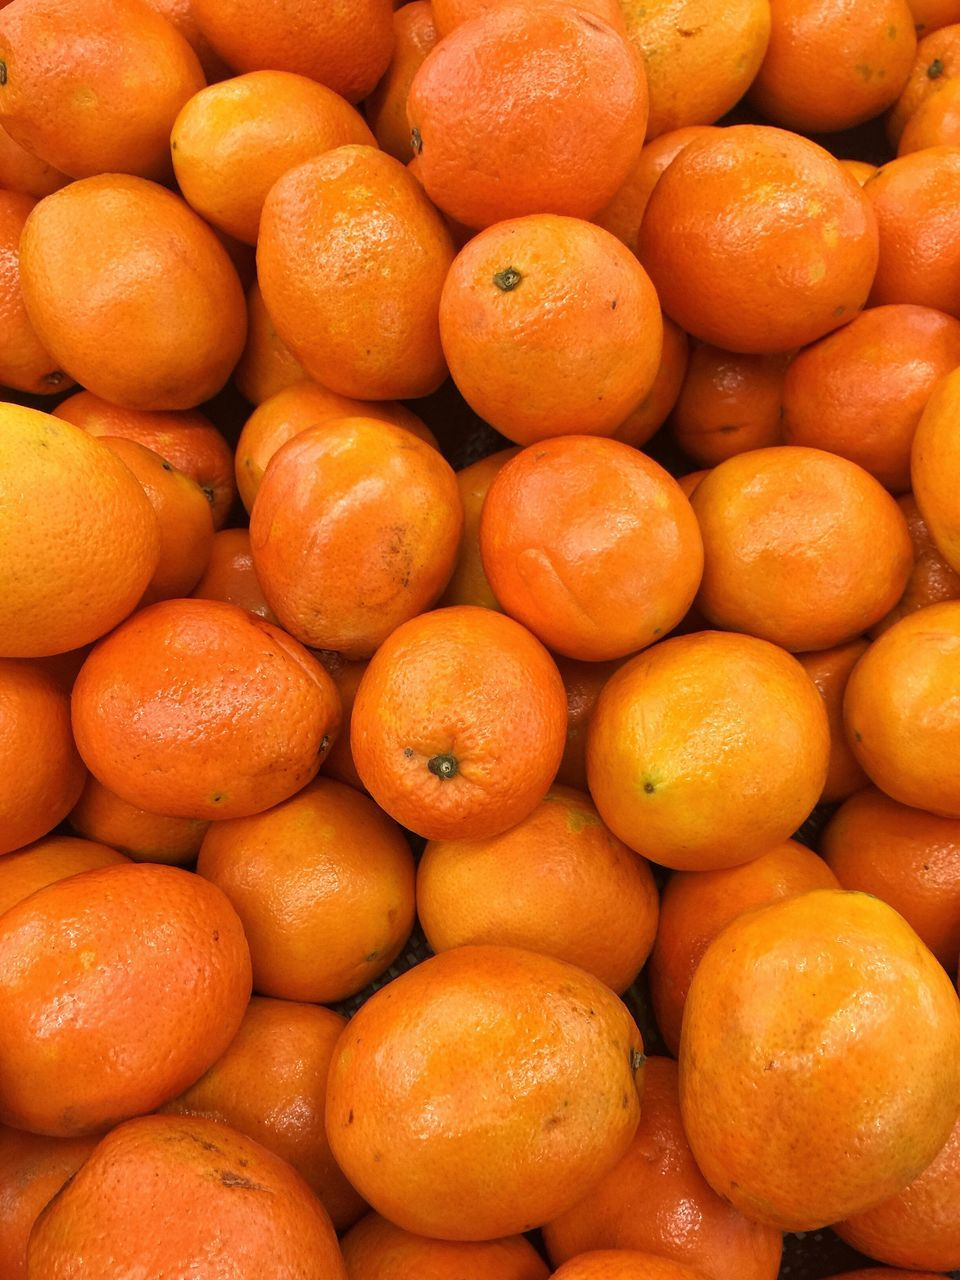 orange color, healthy eating, backgrounds, food and drink, fruit, freshness, food, abundance, market, full frame, large group of objects, for sale, citrus fruit, retail, no people, healthy lifestyle, close-up, farmer market, day, outdoors